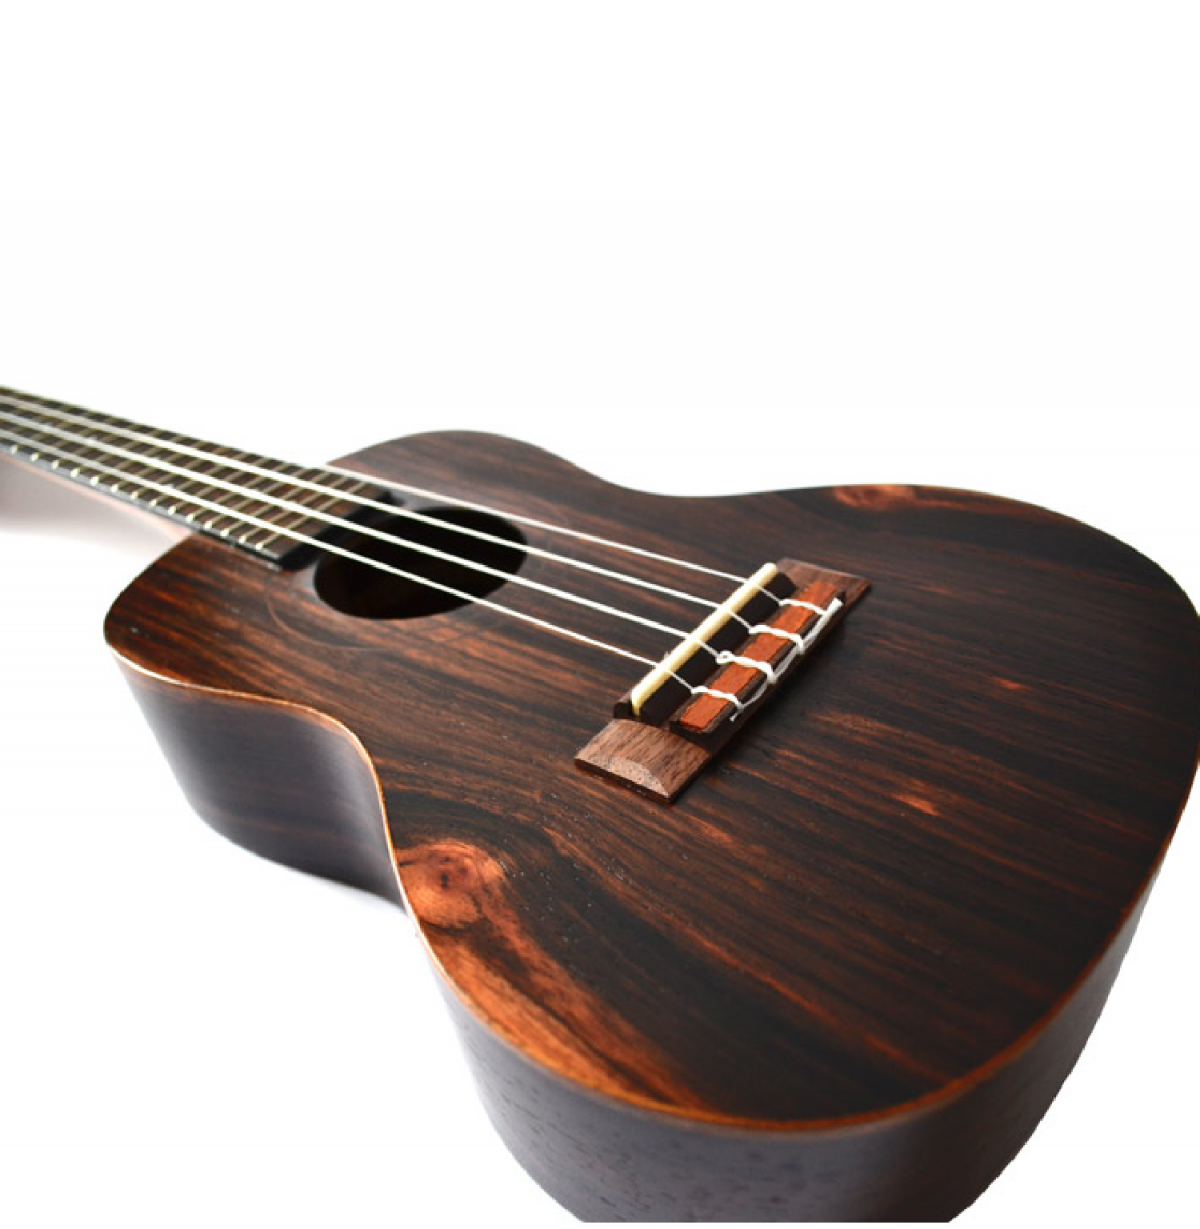 Twisted Wood Dorado Tenor Ukulele - DO300T angle